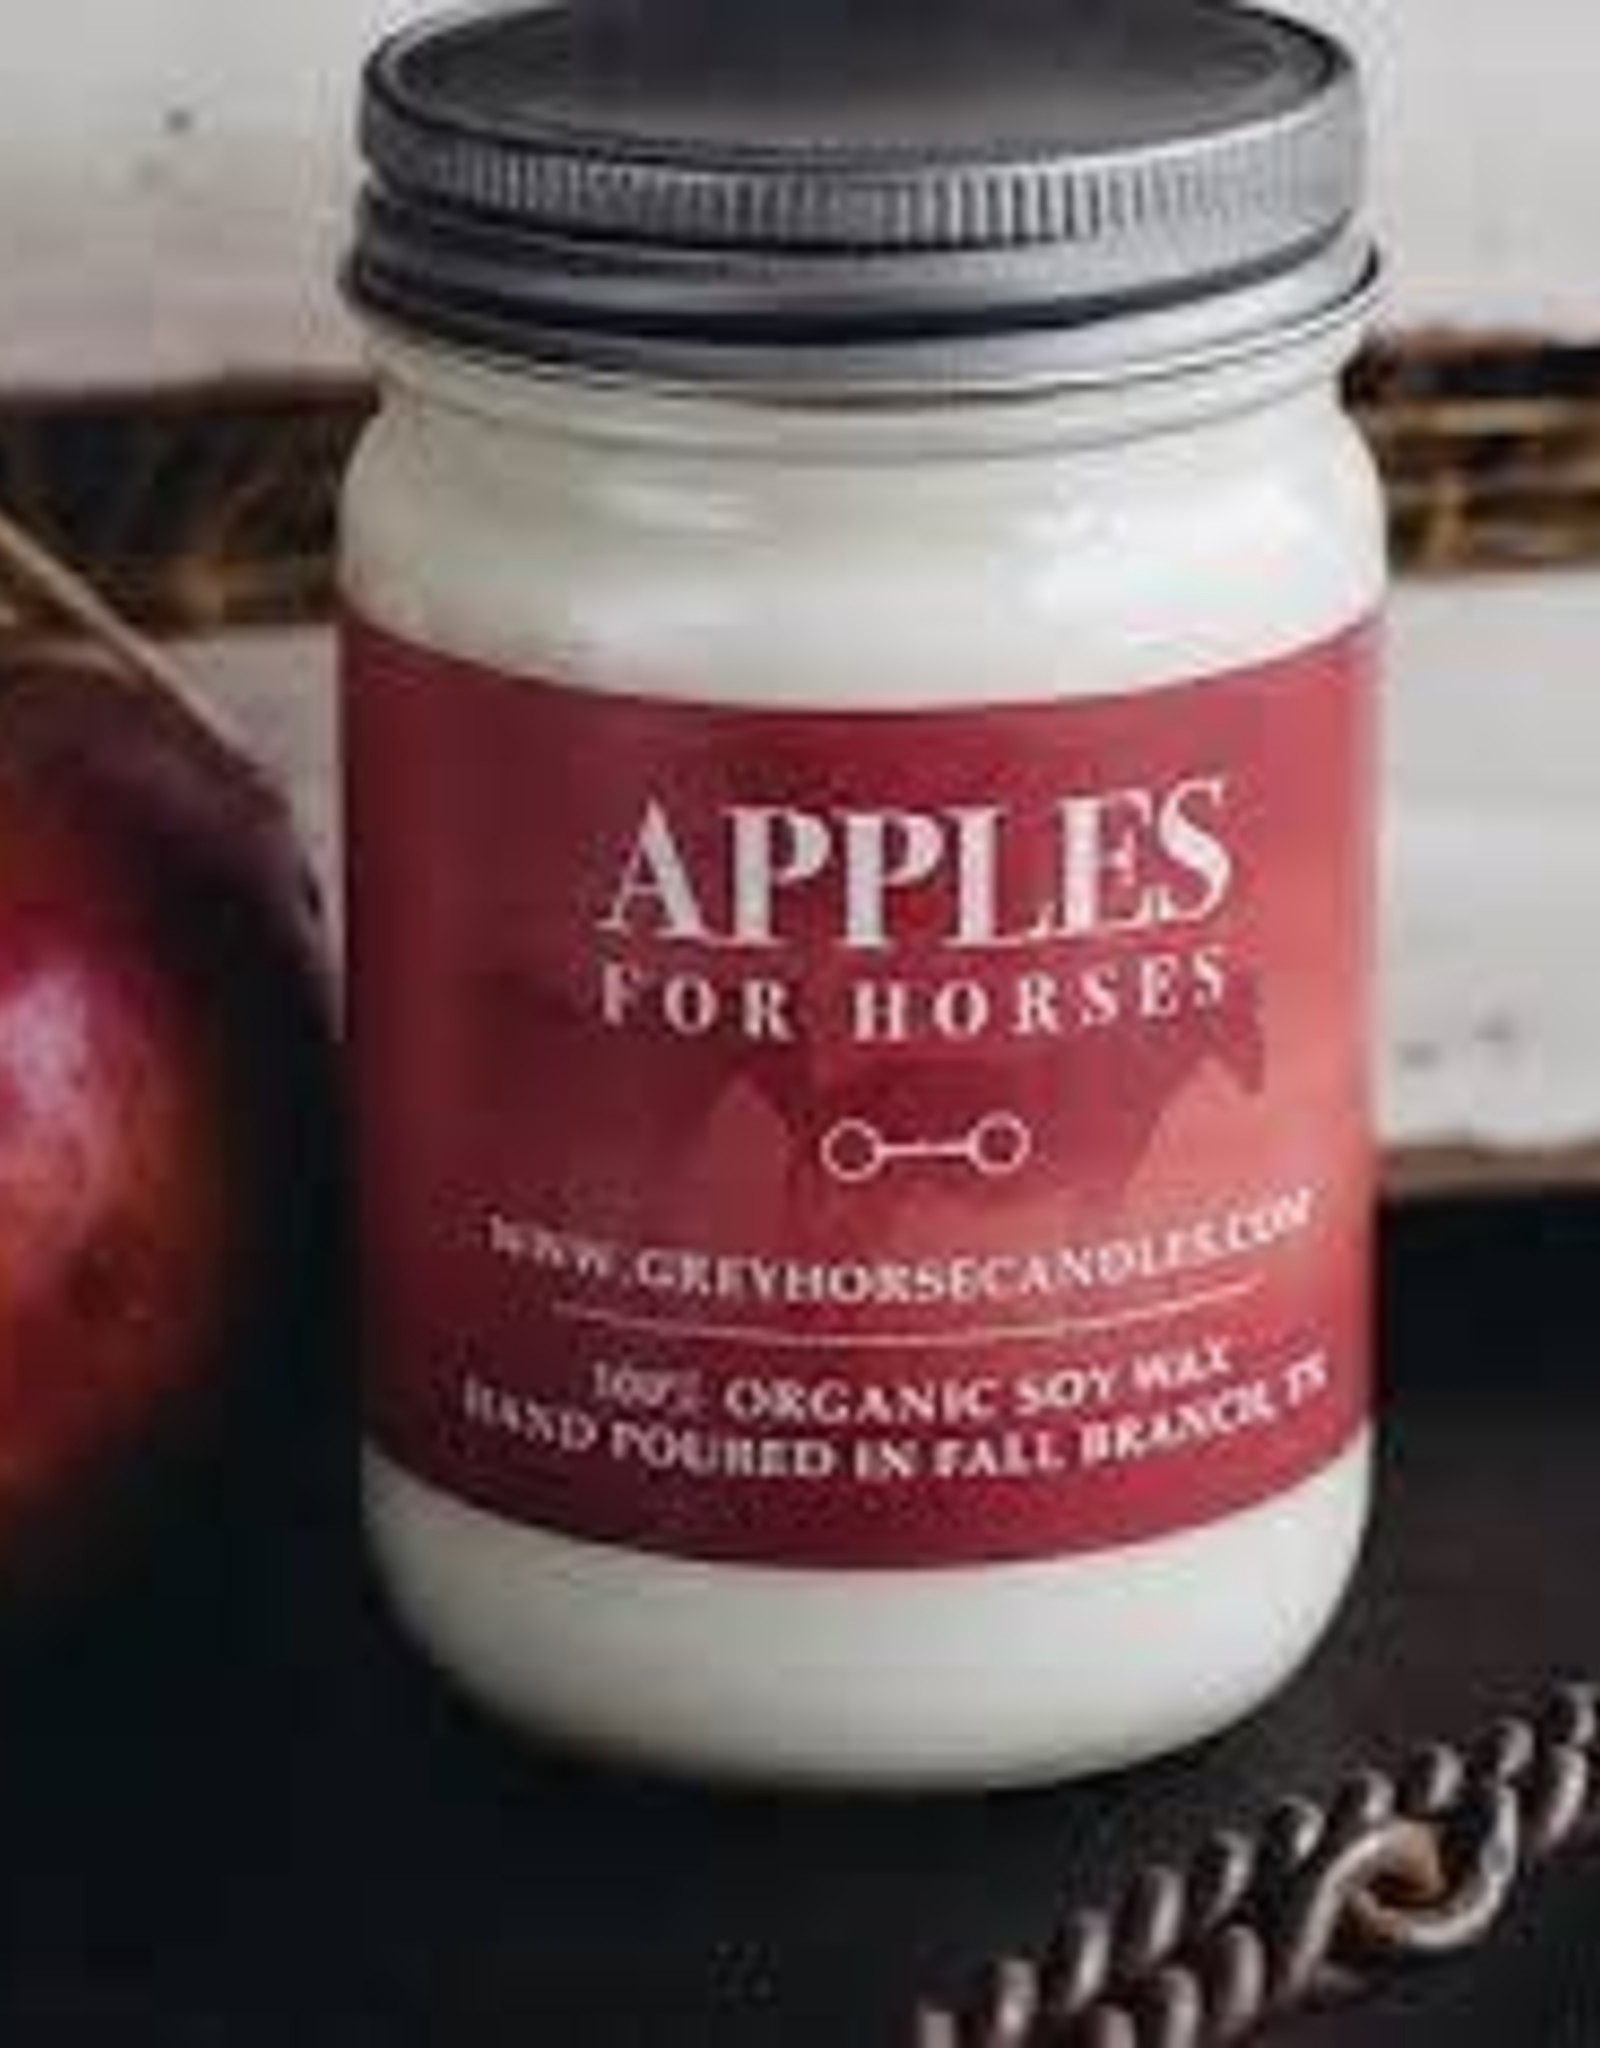 GREY HORSE CANDLE